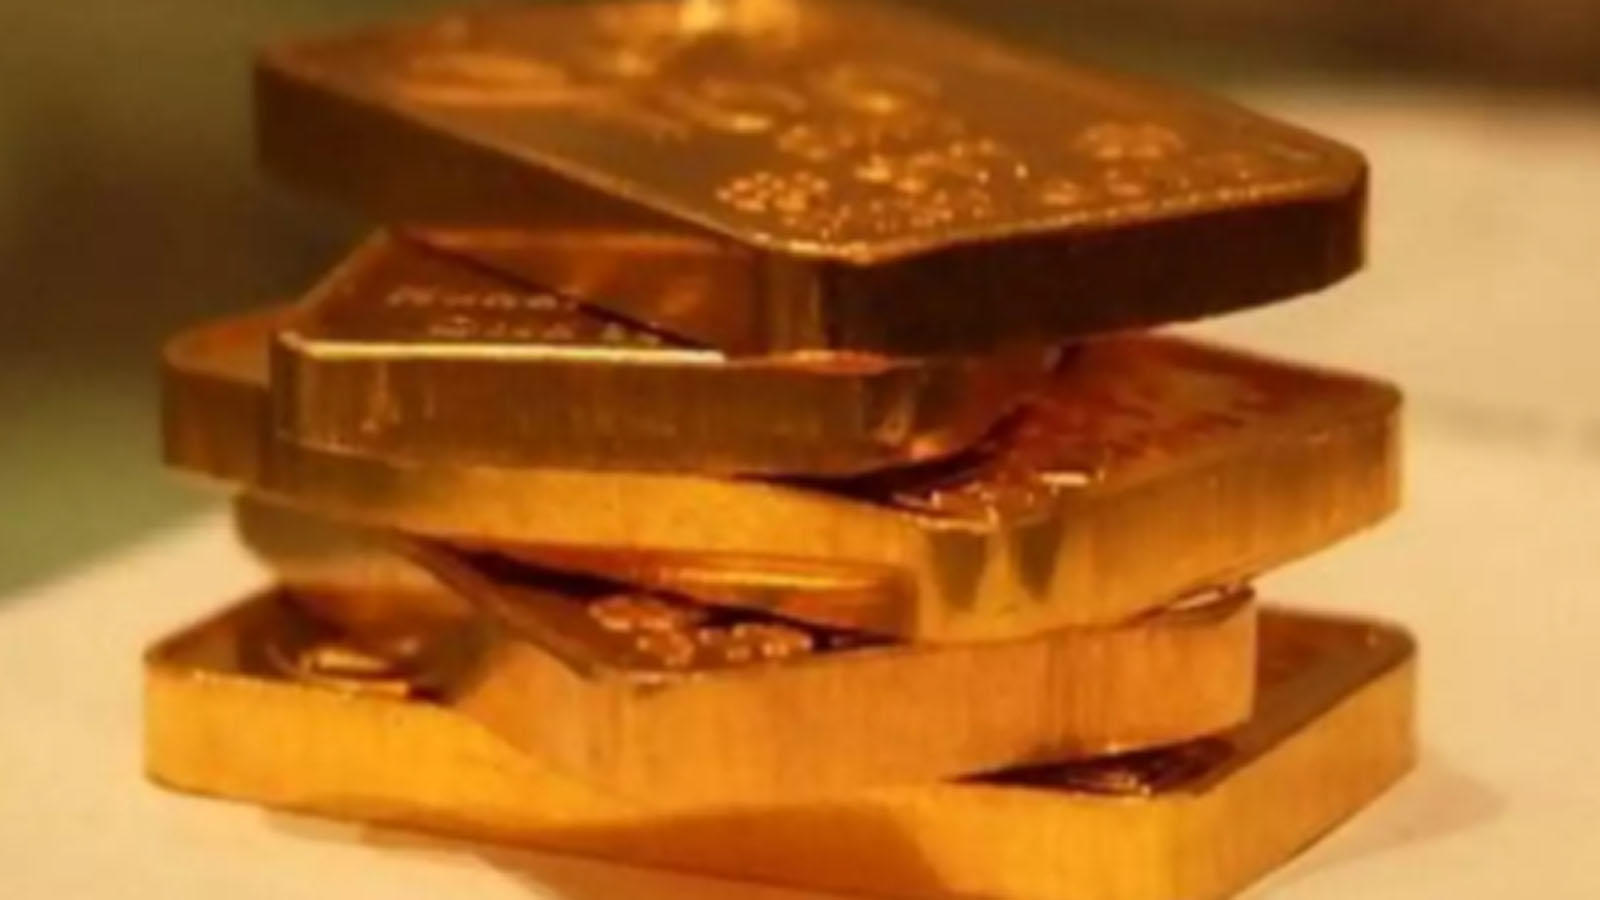 indias-gold-demand-increases-by-19-2-in-april-june-quarter-at-76-tonne-wgc